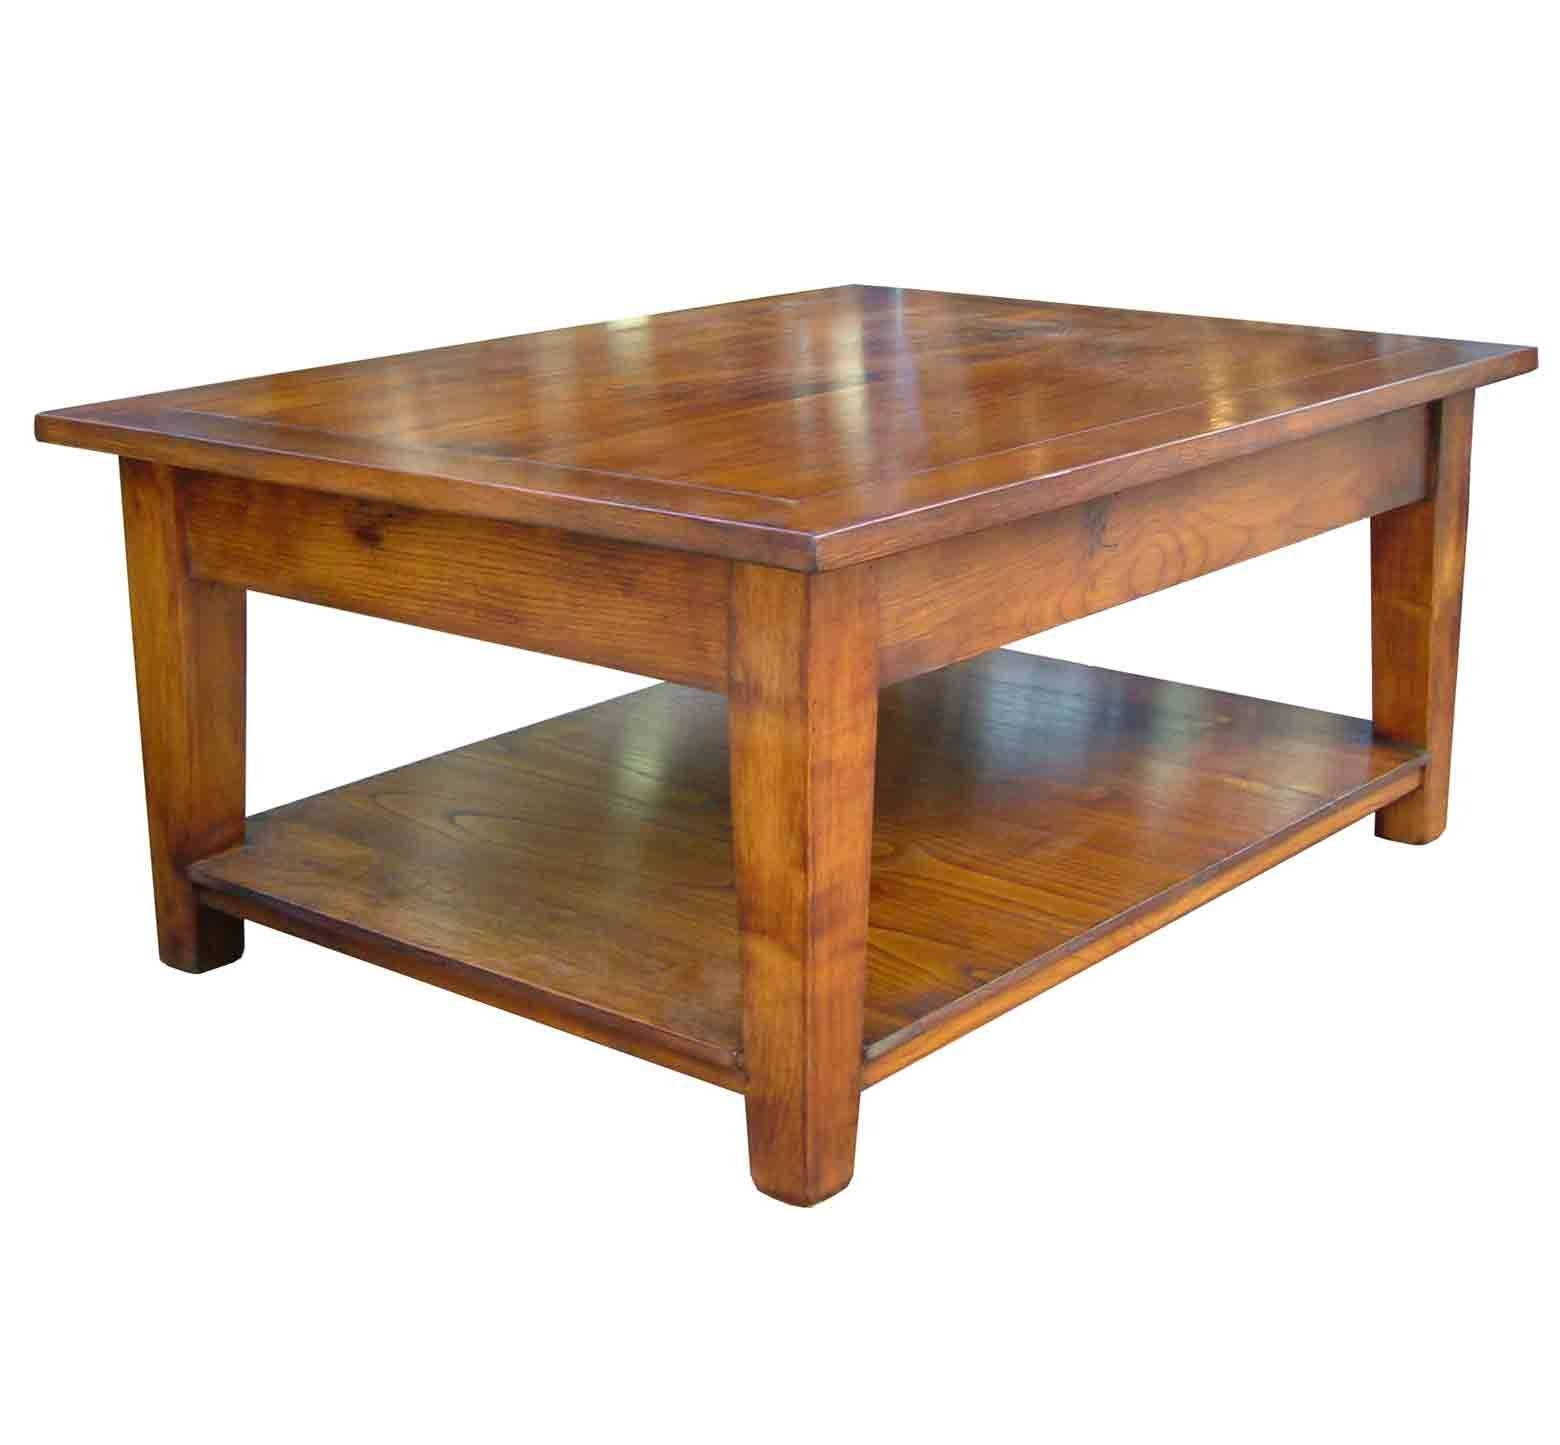 Southwold Solid Cherry Wood Coffee Table With Pot Board » Handmade throughout Handmade Wooden Coffee Tables (Image 13 of 15)